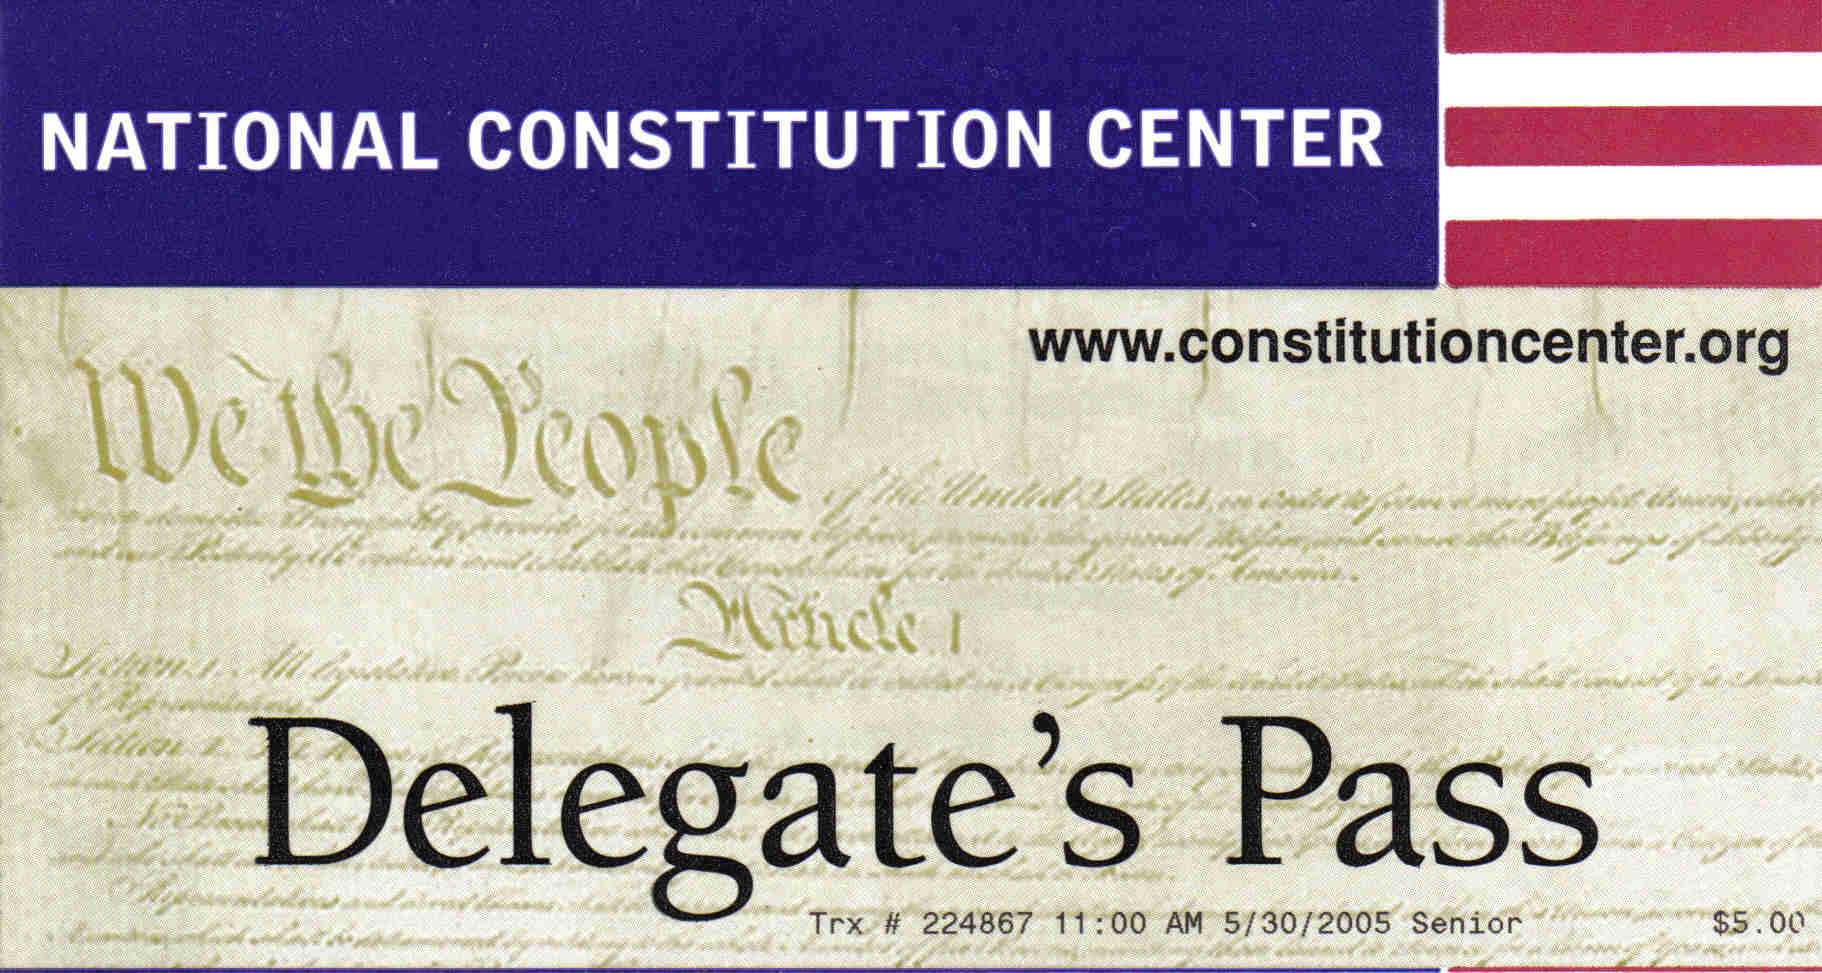 National Constitution Center ticket